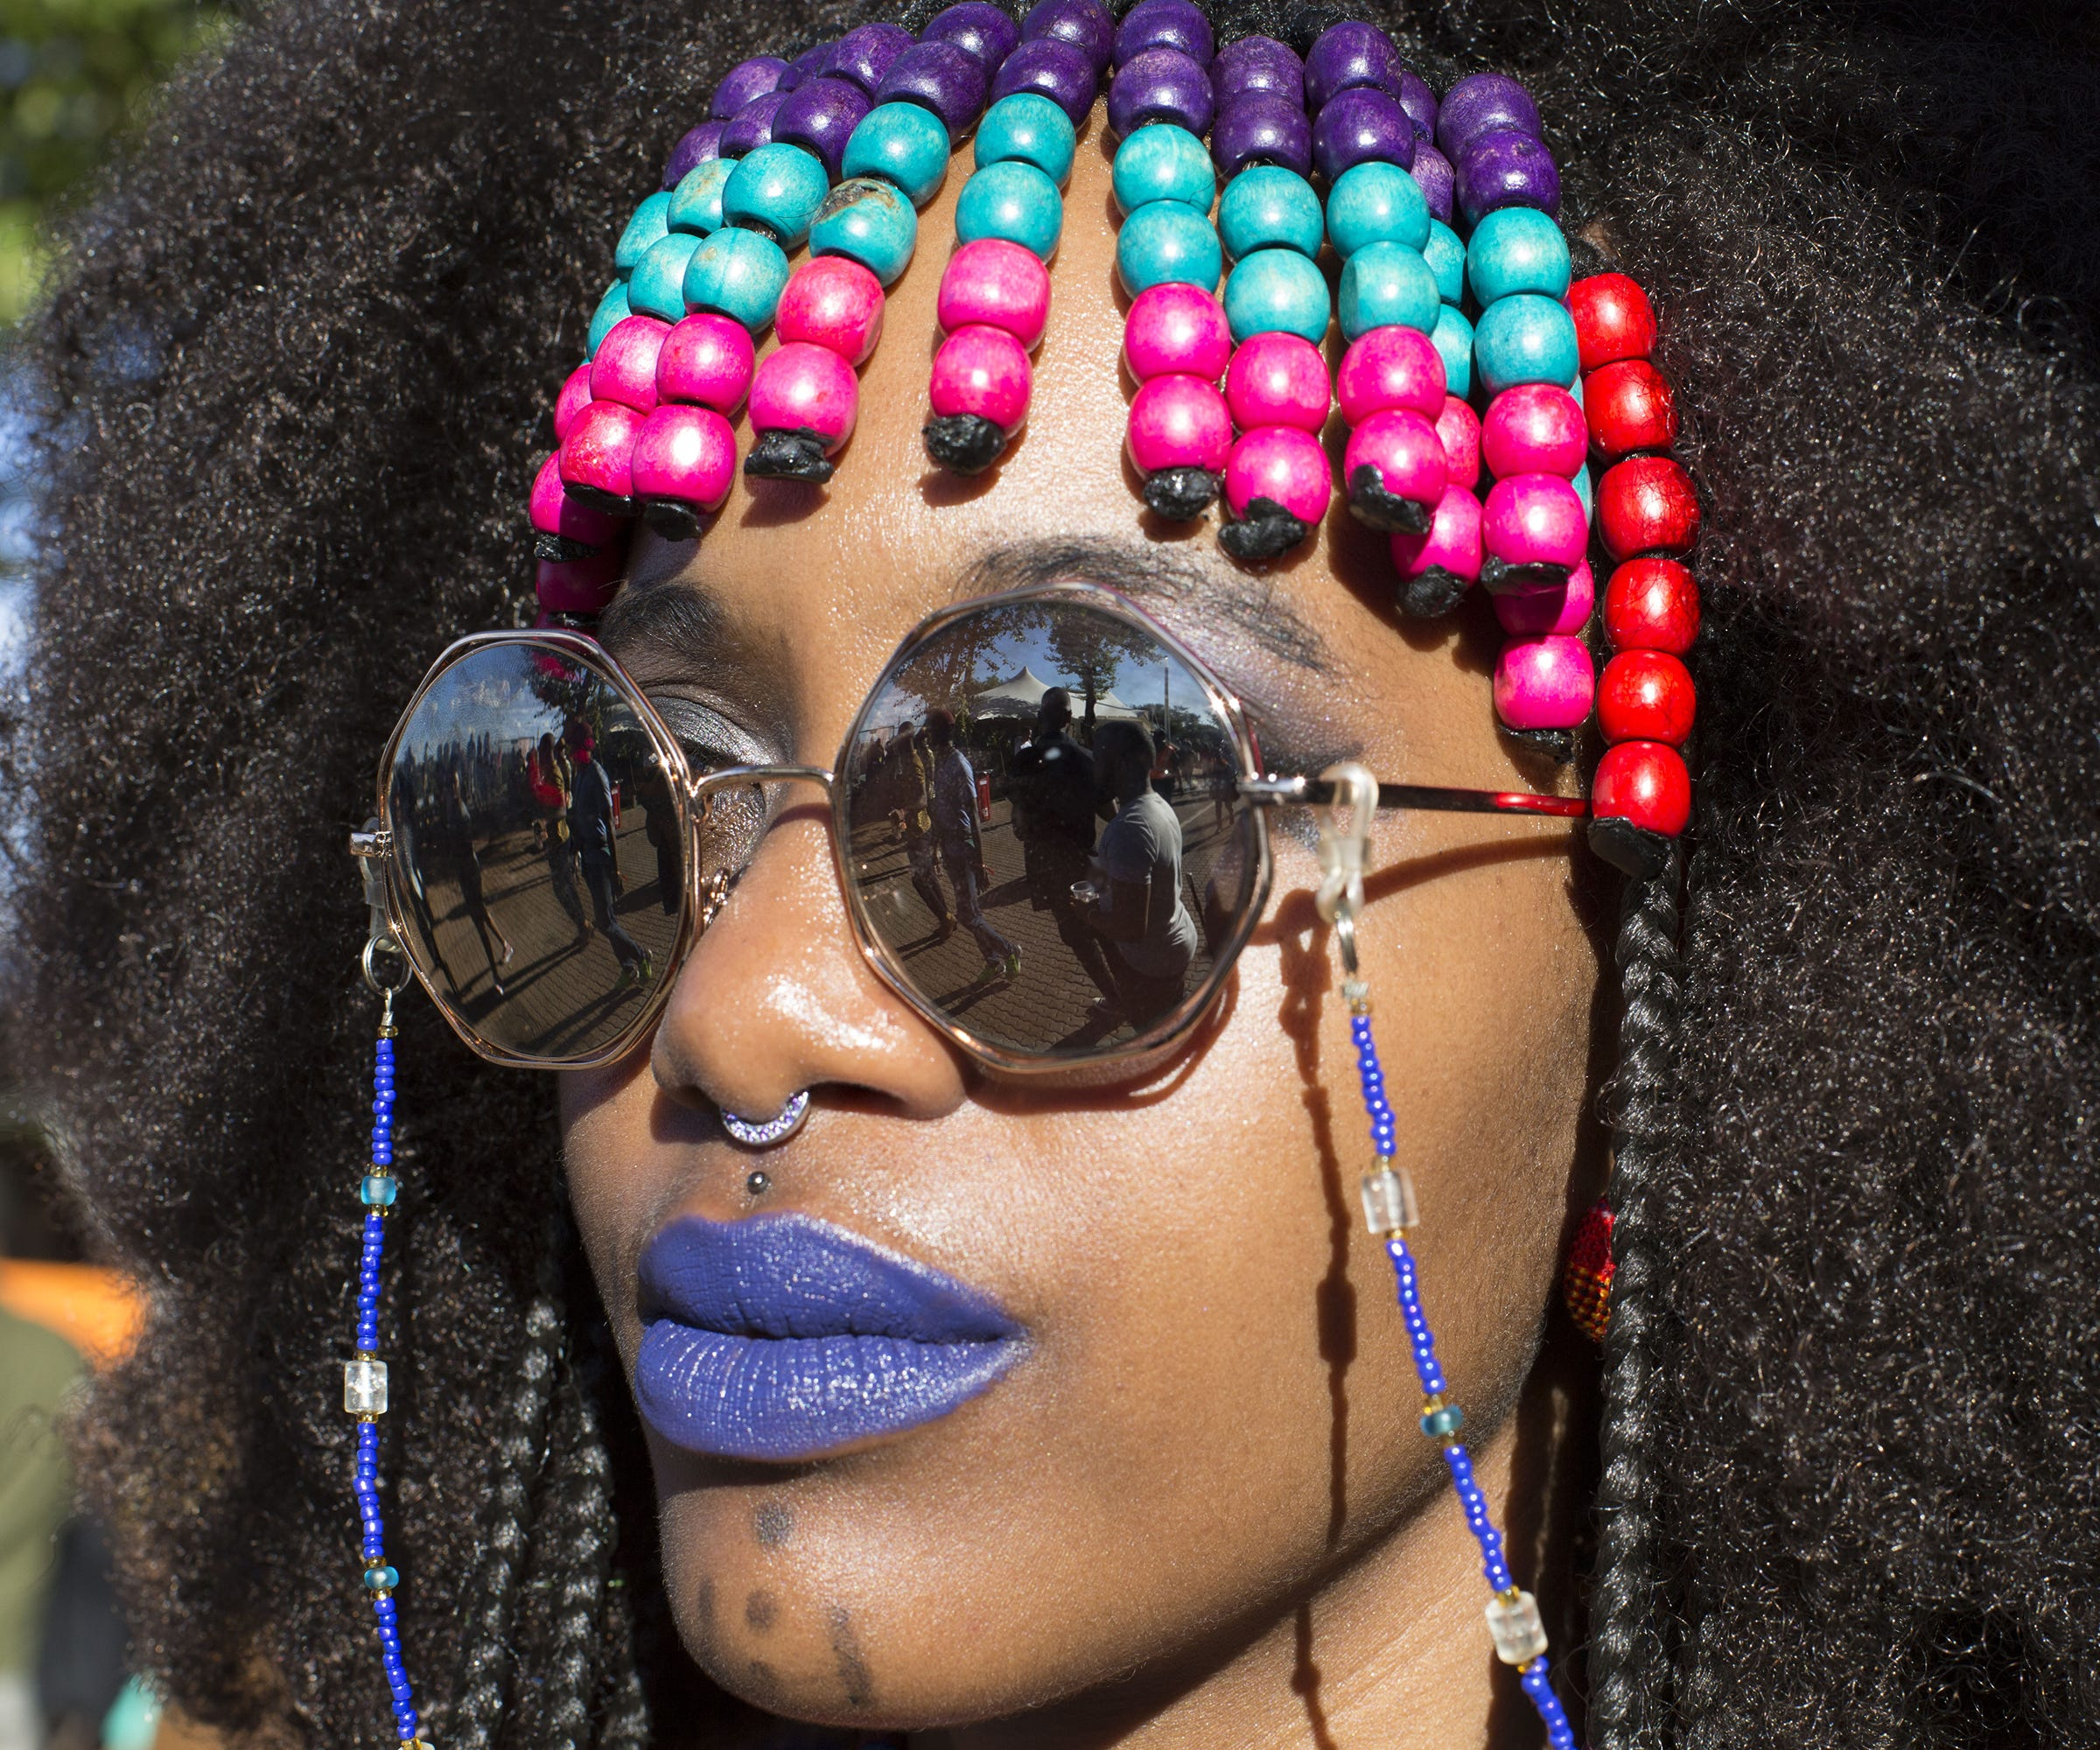 Braided Bangs Make Protective Styles Look Even Cooler